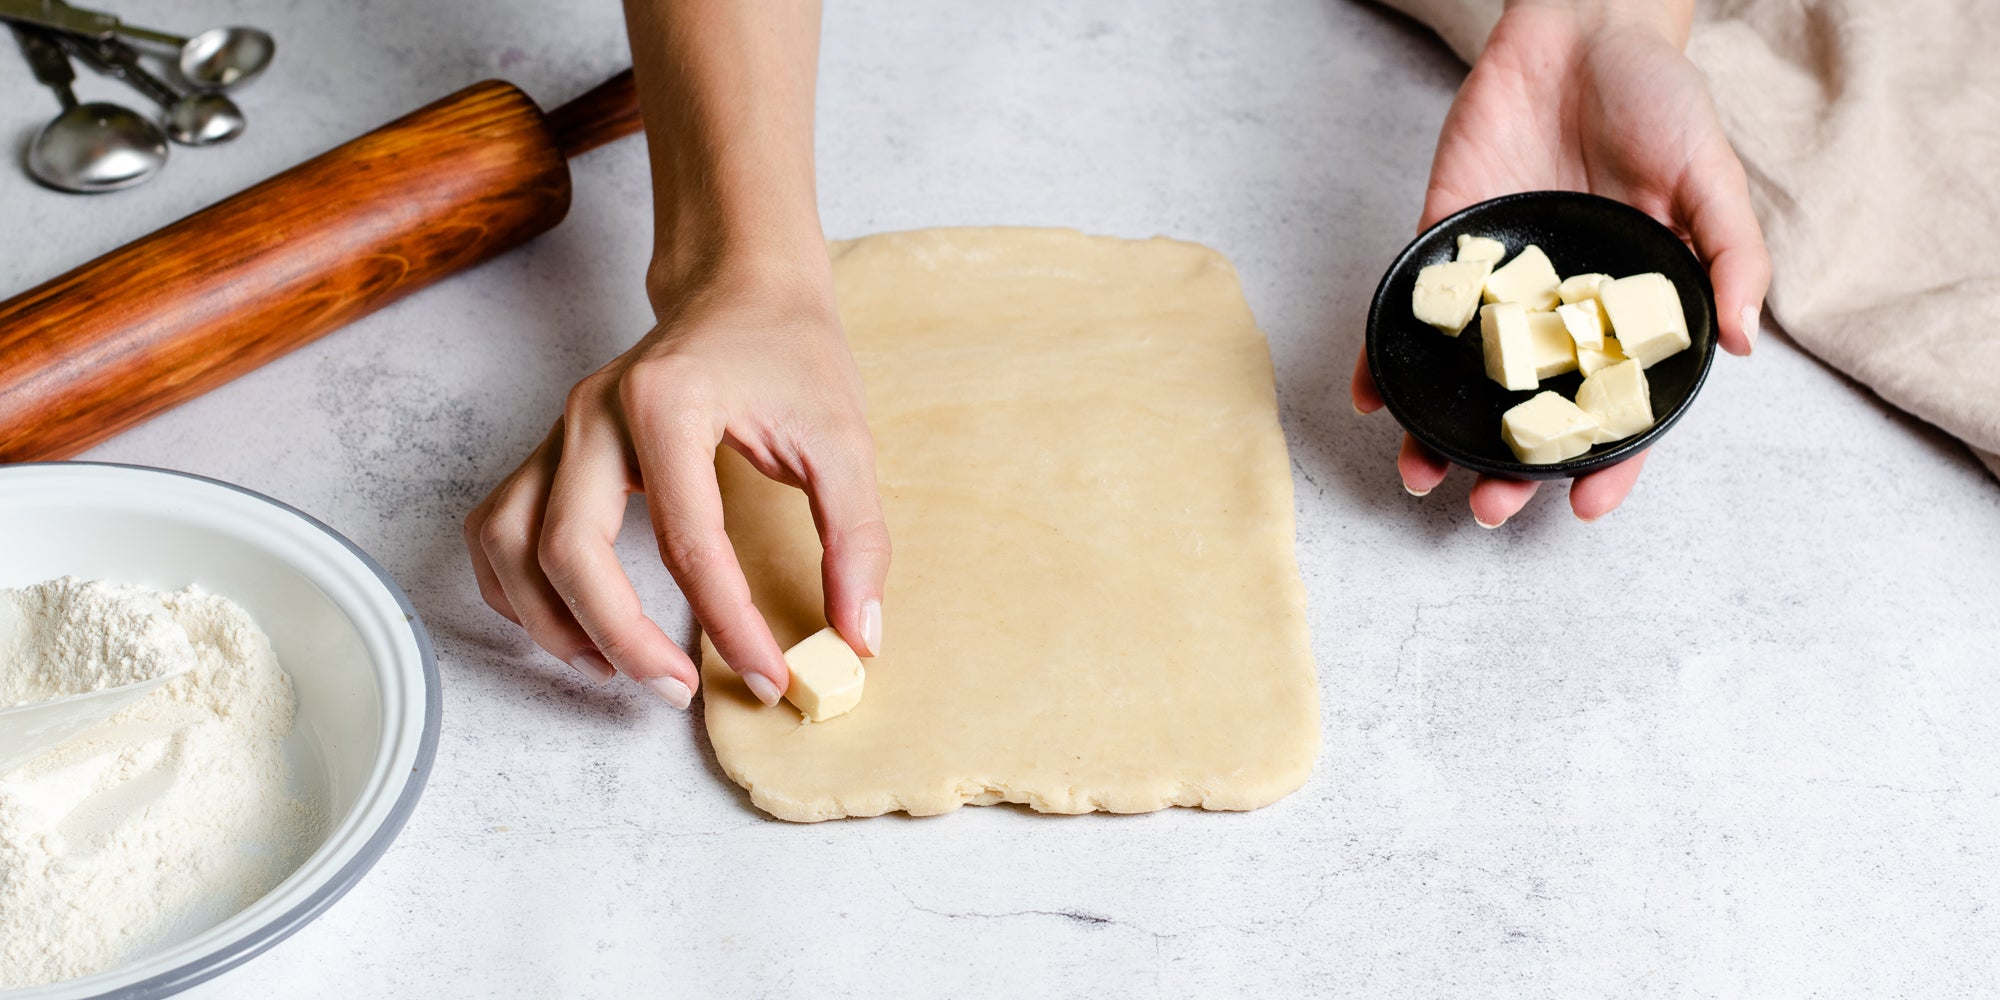 Hand laying out pieces of butter on rolled out Puff Pastry dough, ready to fold and roll out, next to a rolling pin and bowl of flour